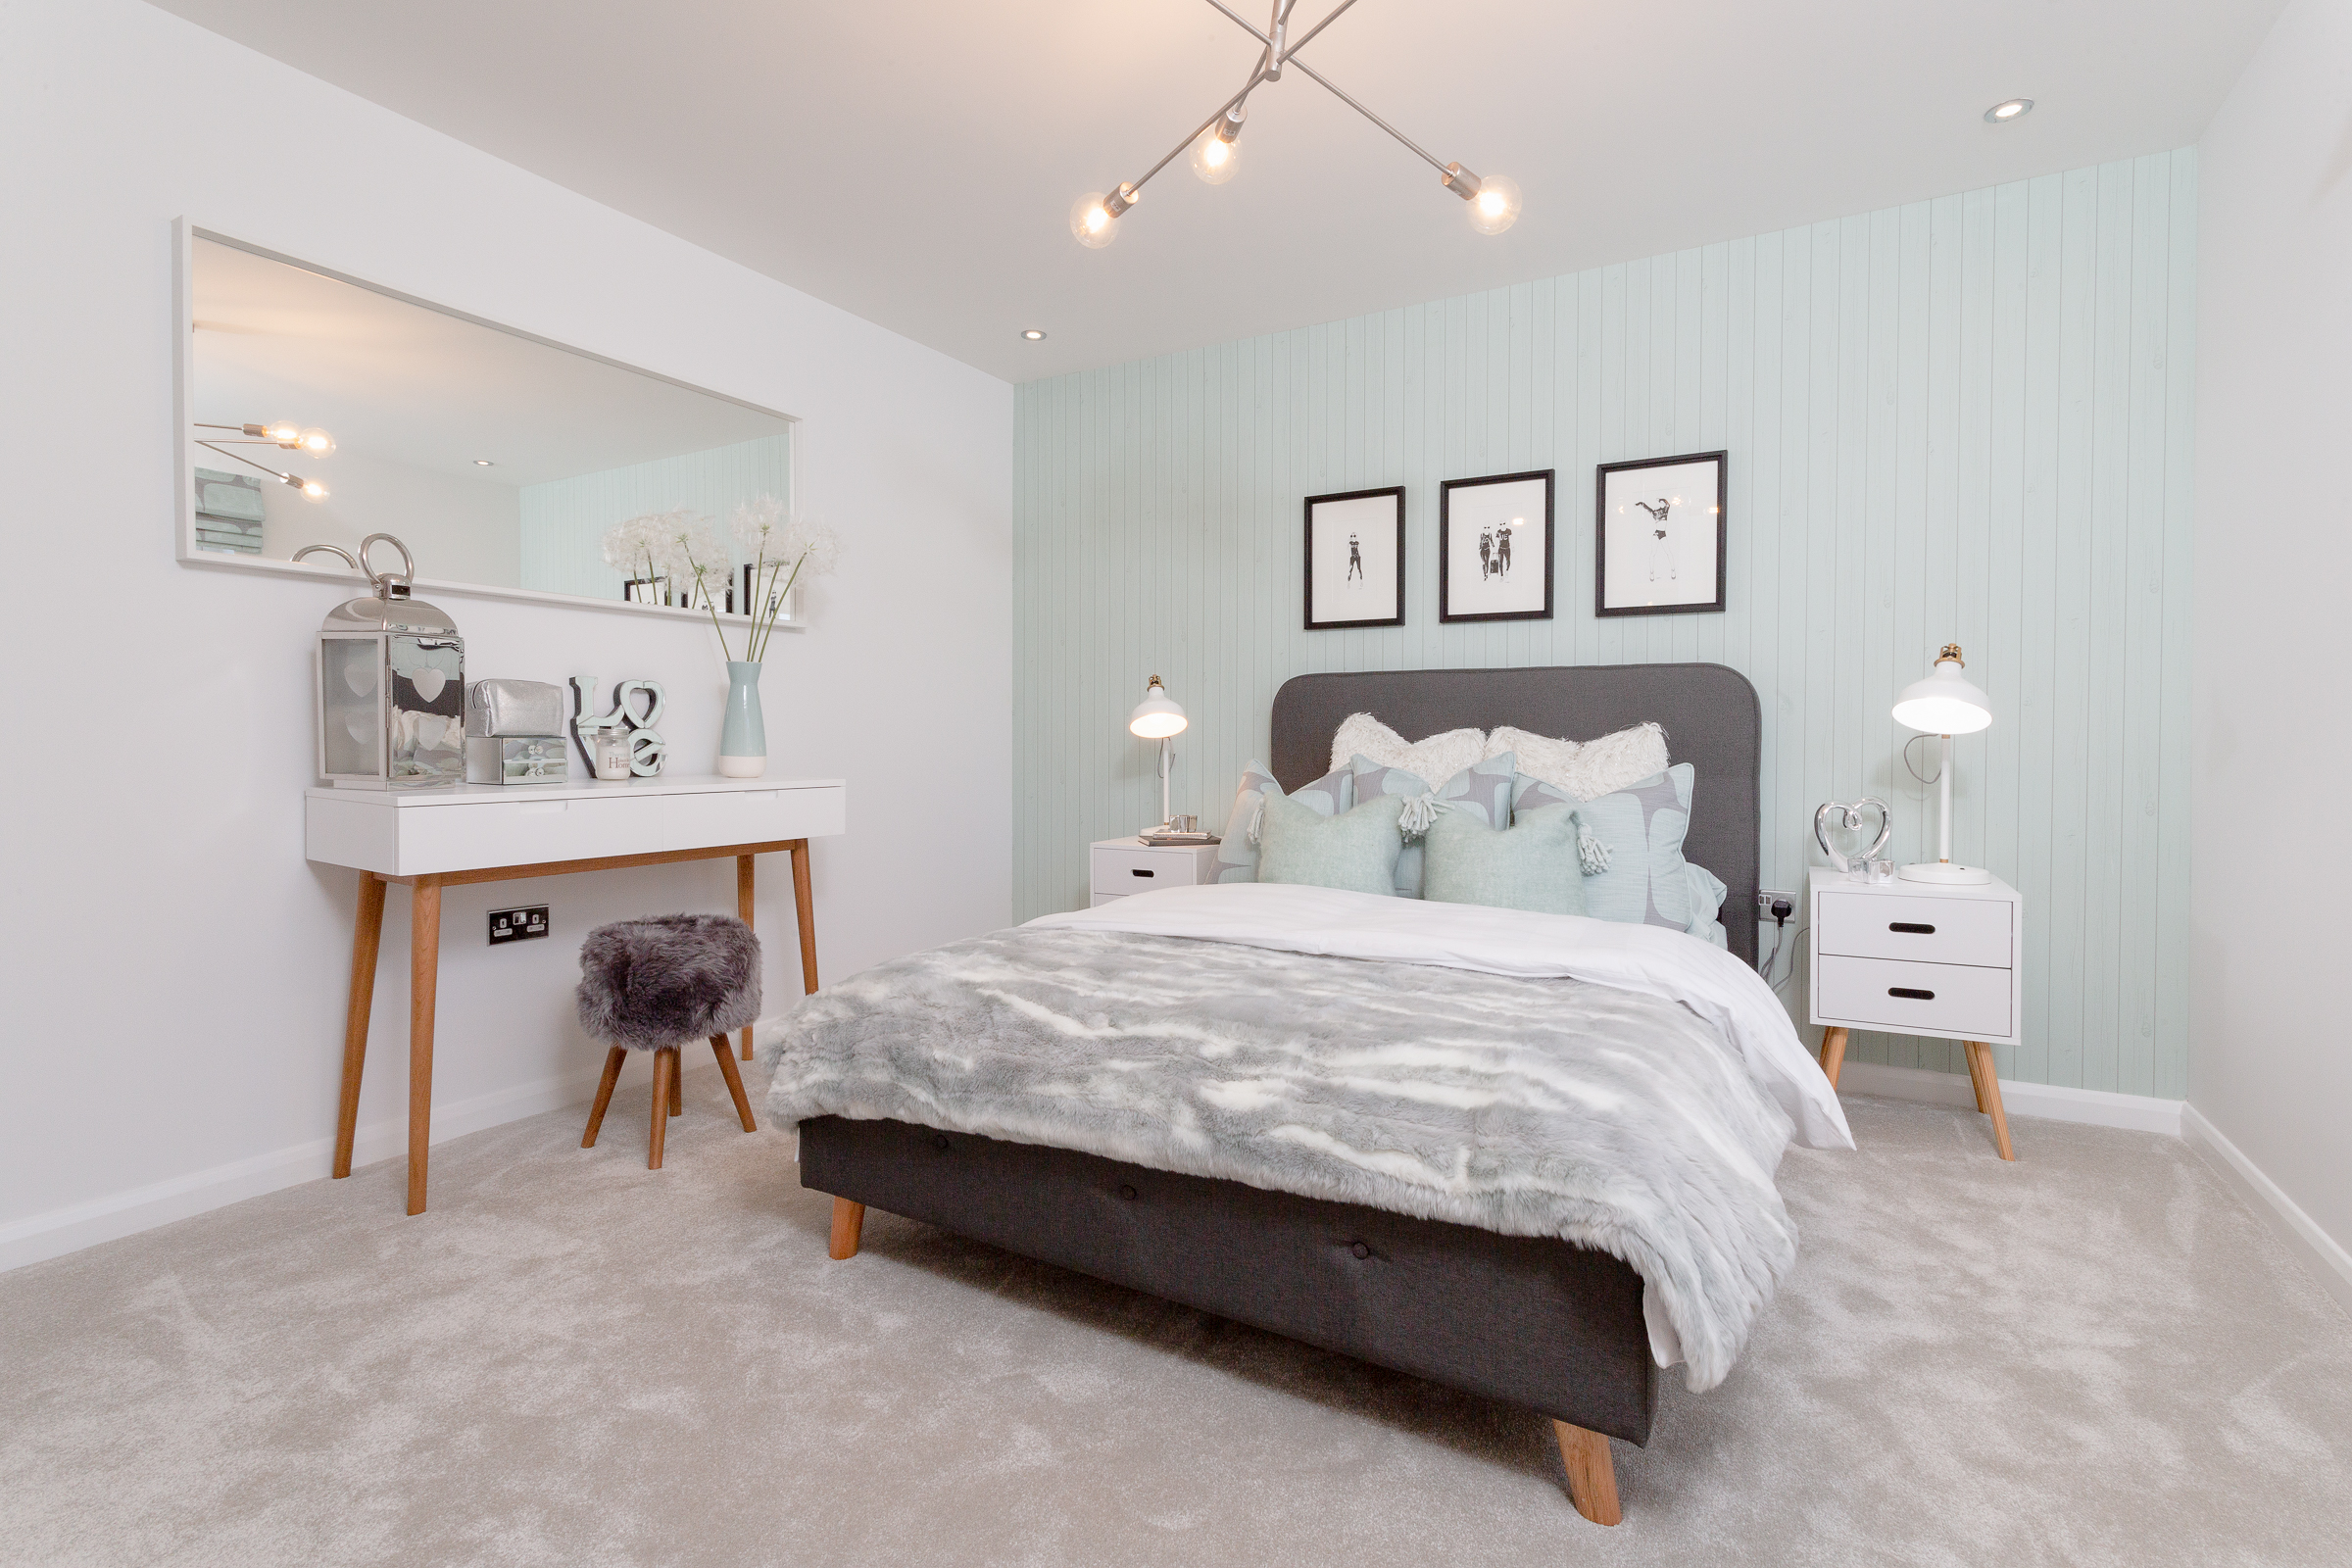 TWES_Calderwood_TheStewart_Bedroom2-2